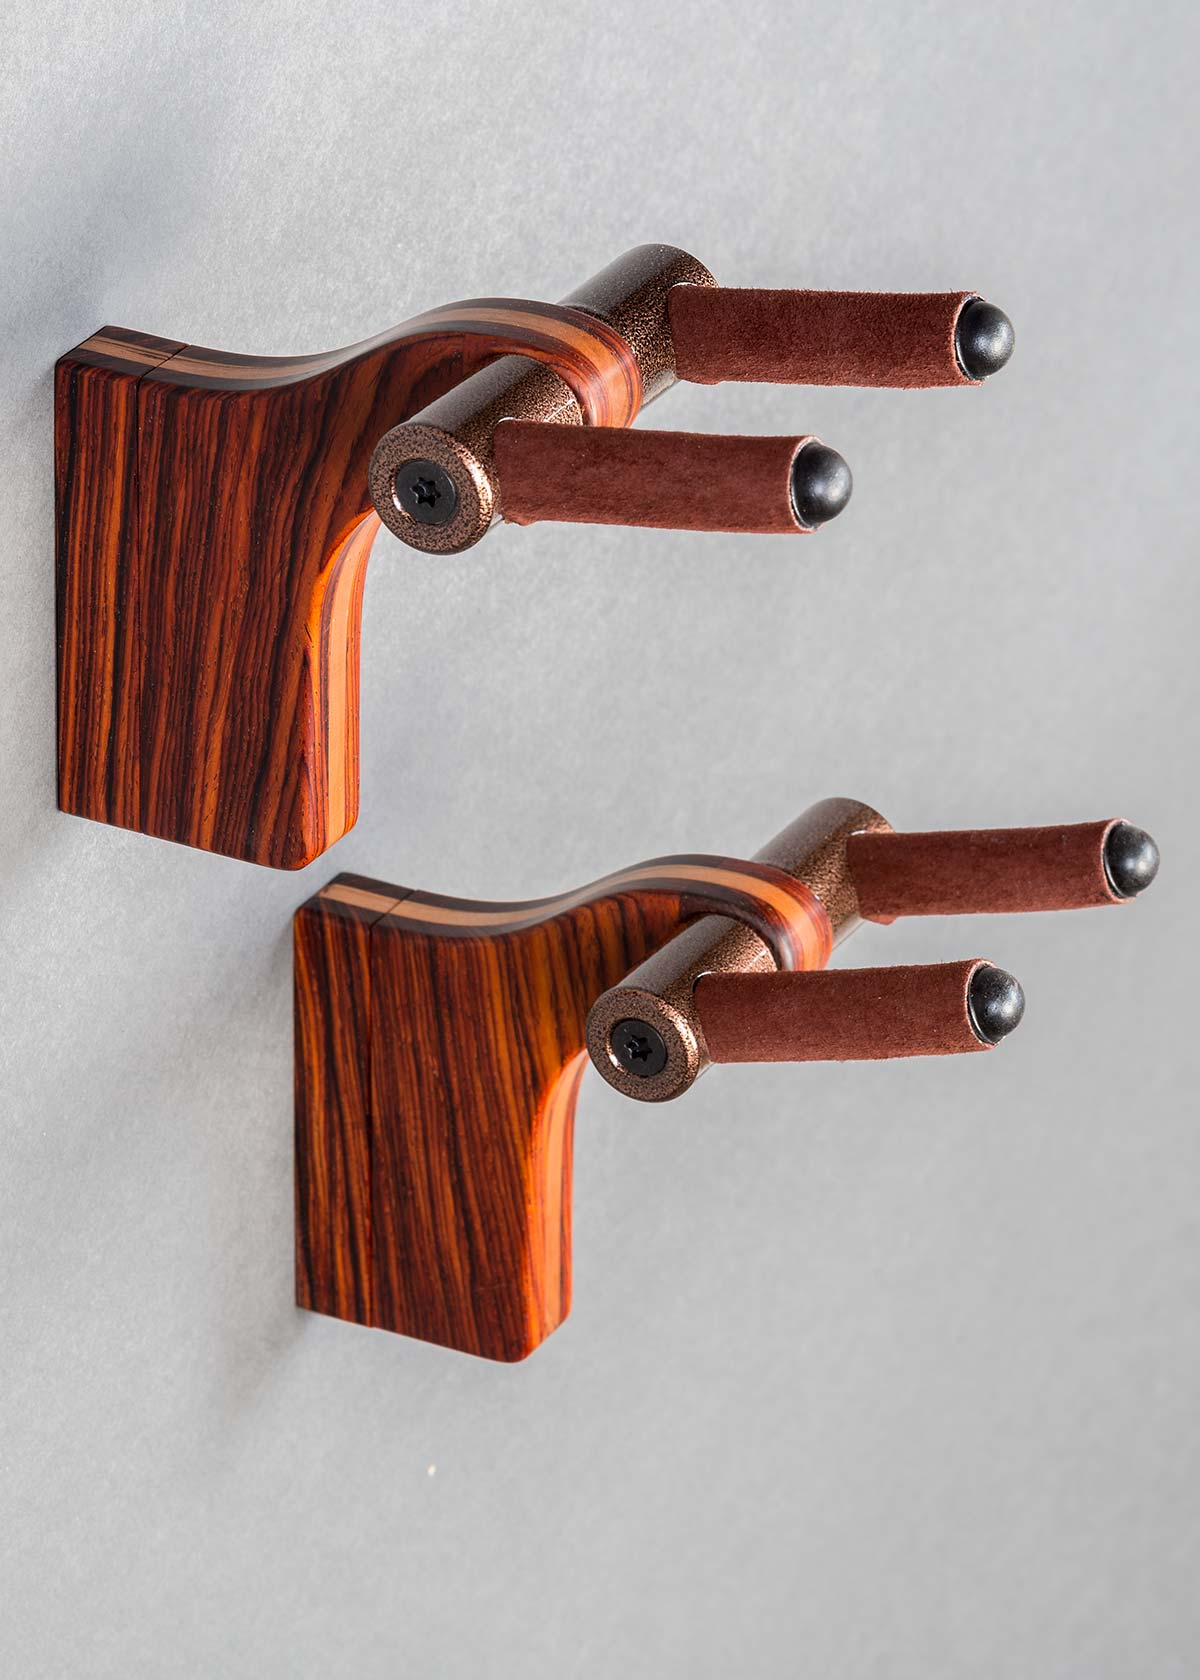 AM Guitar Wall Hanger in Cocobolo with Cherry